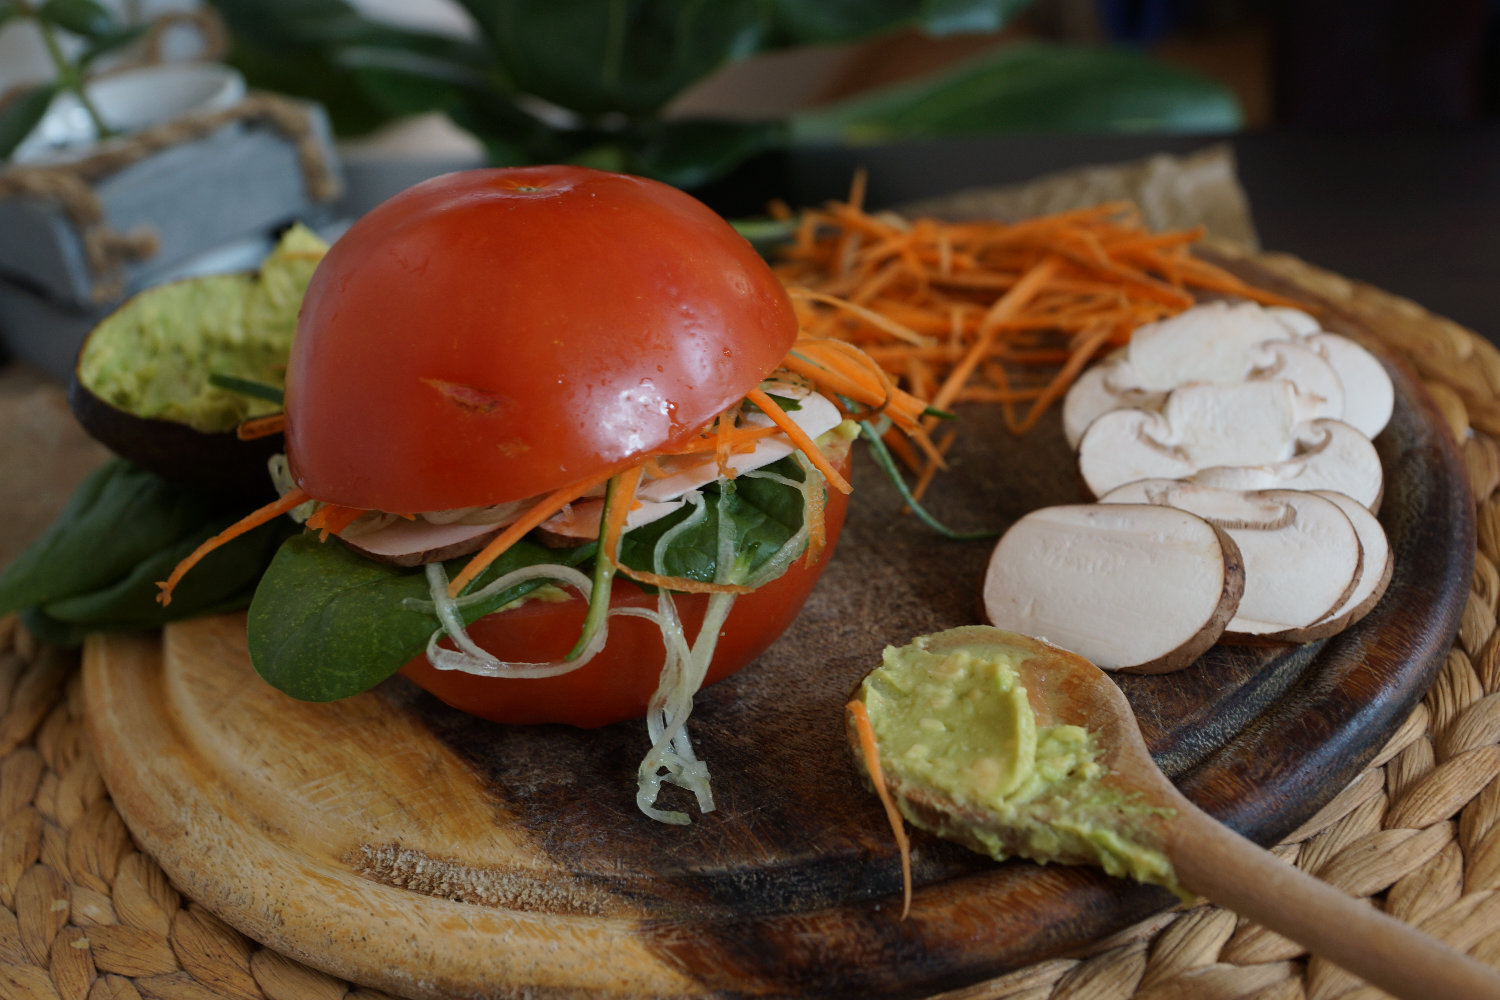 Raw vegan burger | Rohkost Burger